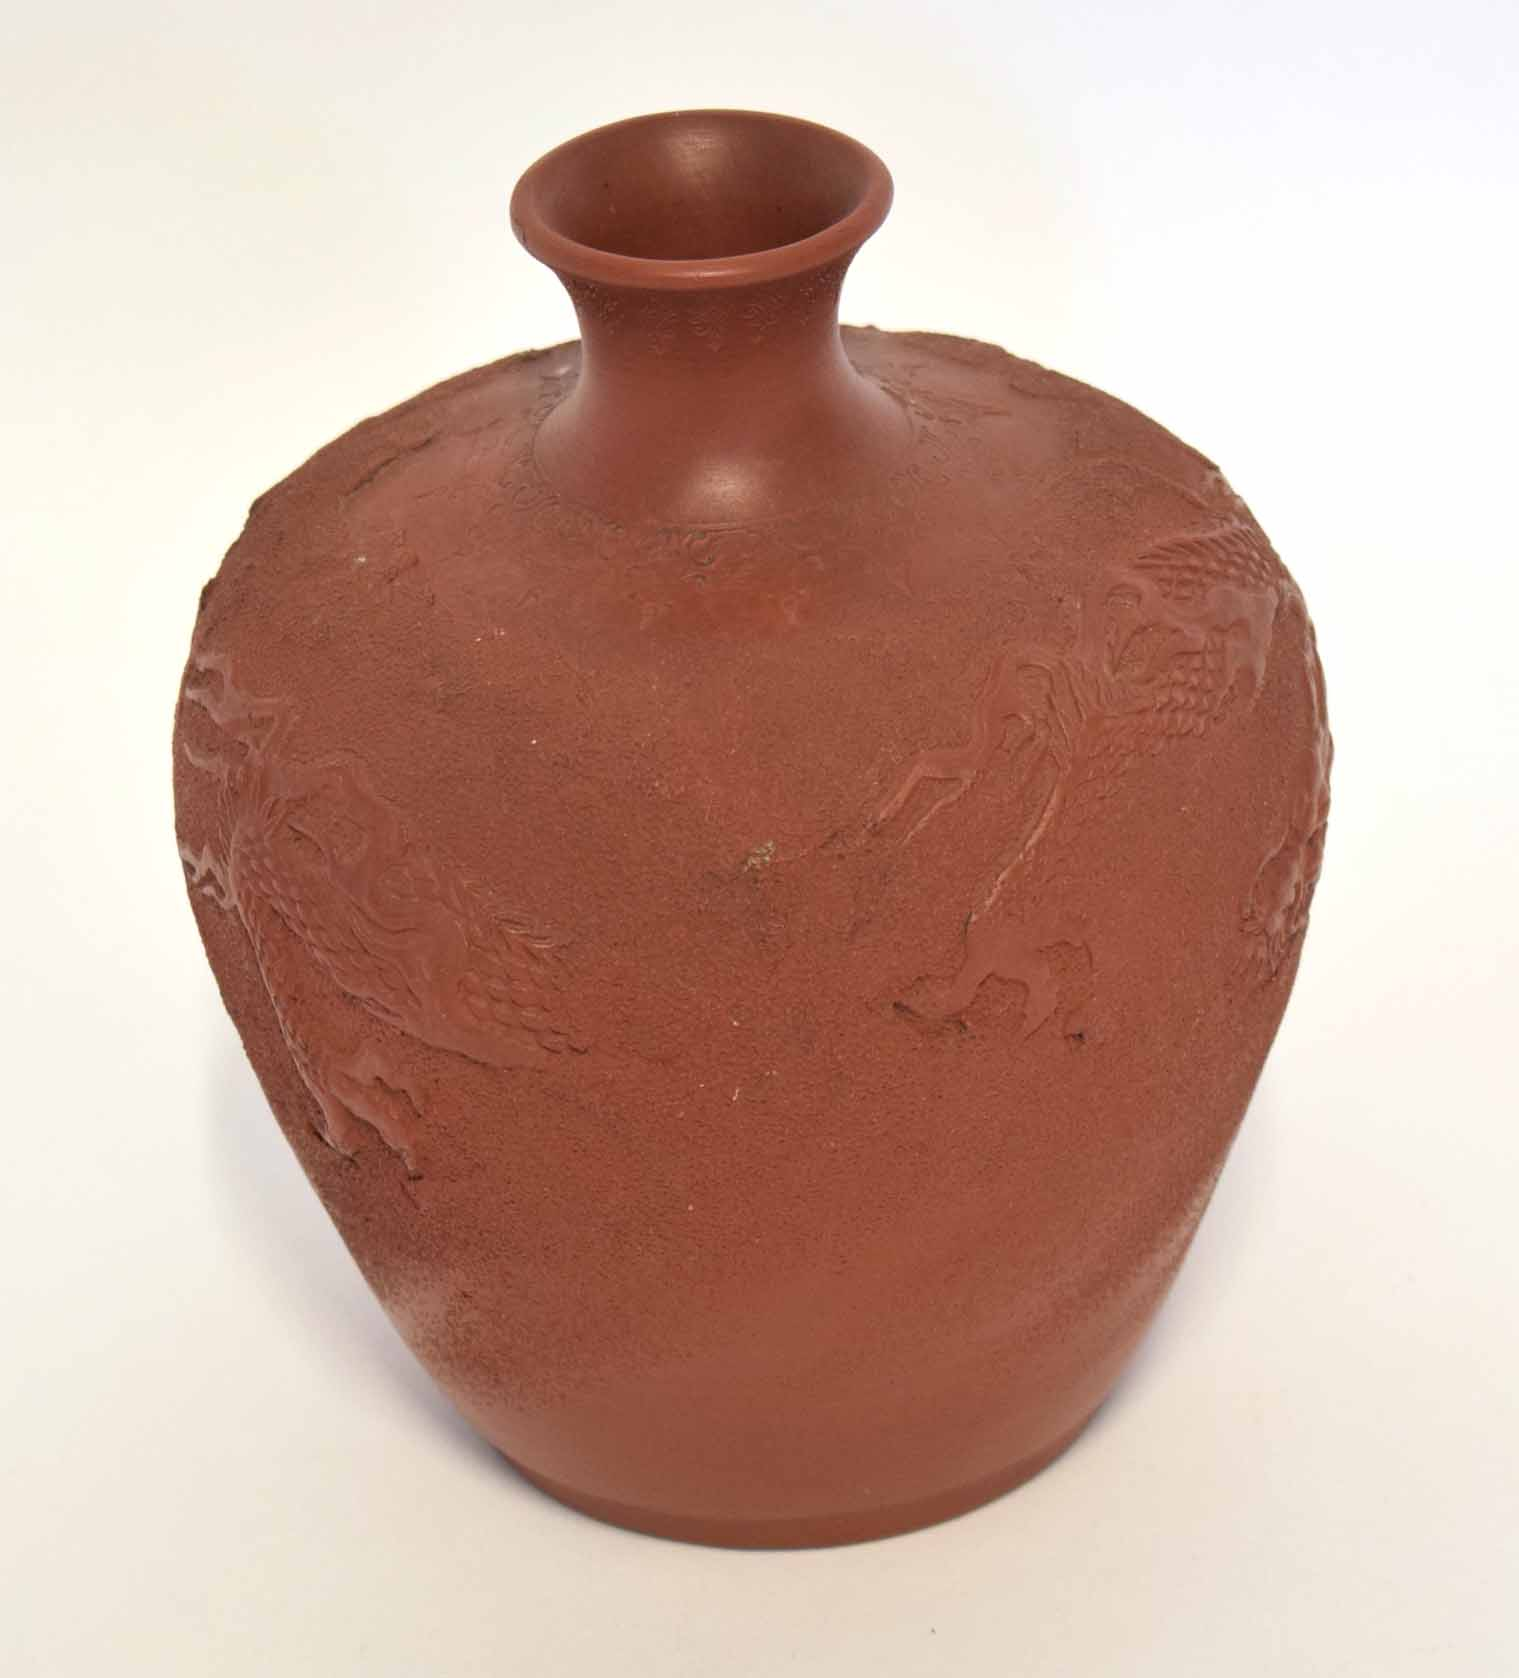 Lot 17 - Chinese red ware vase, the body carved in relief with a sinuous dragon, 19cm high